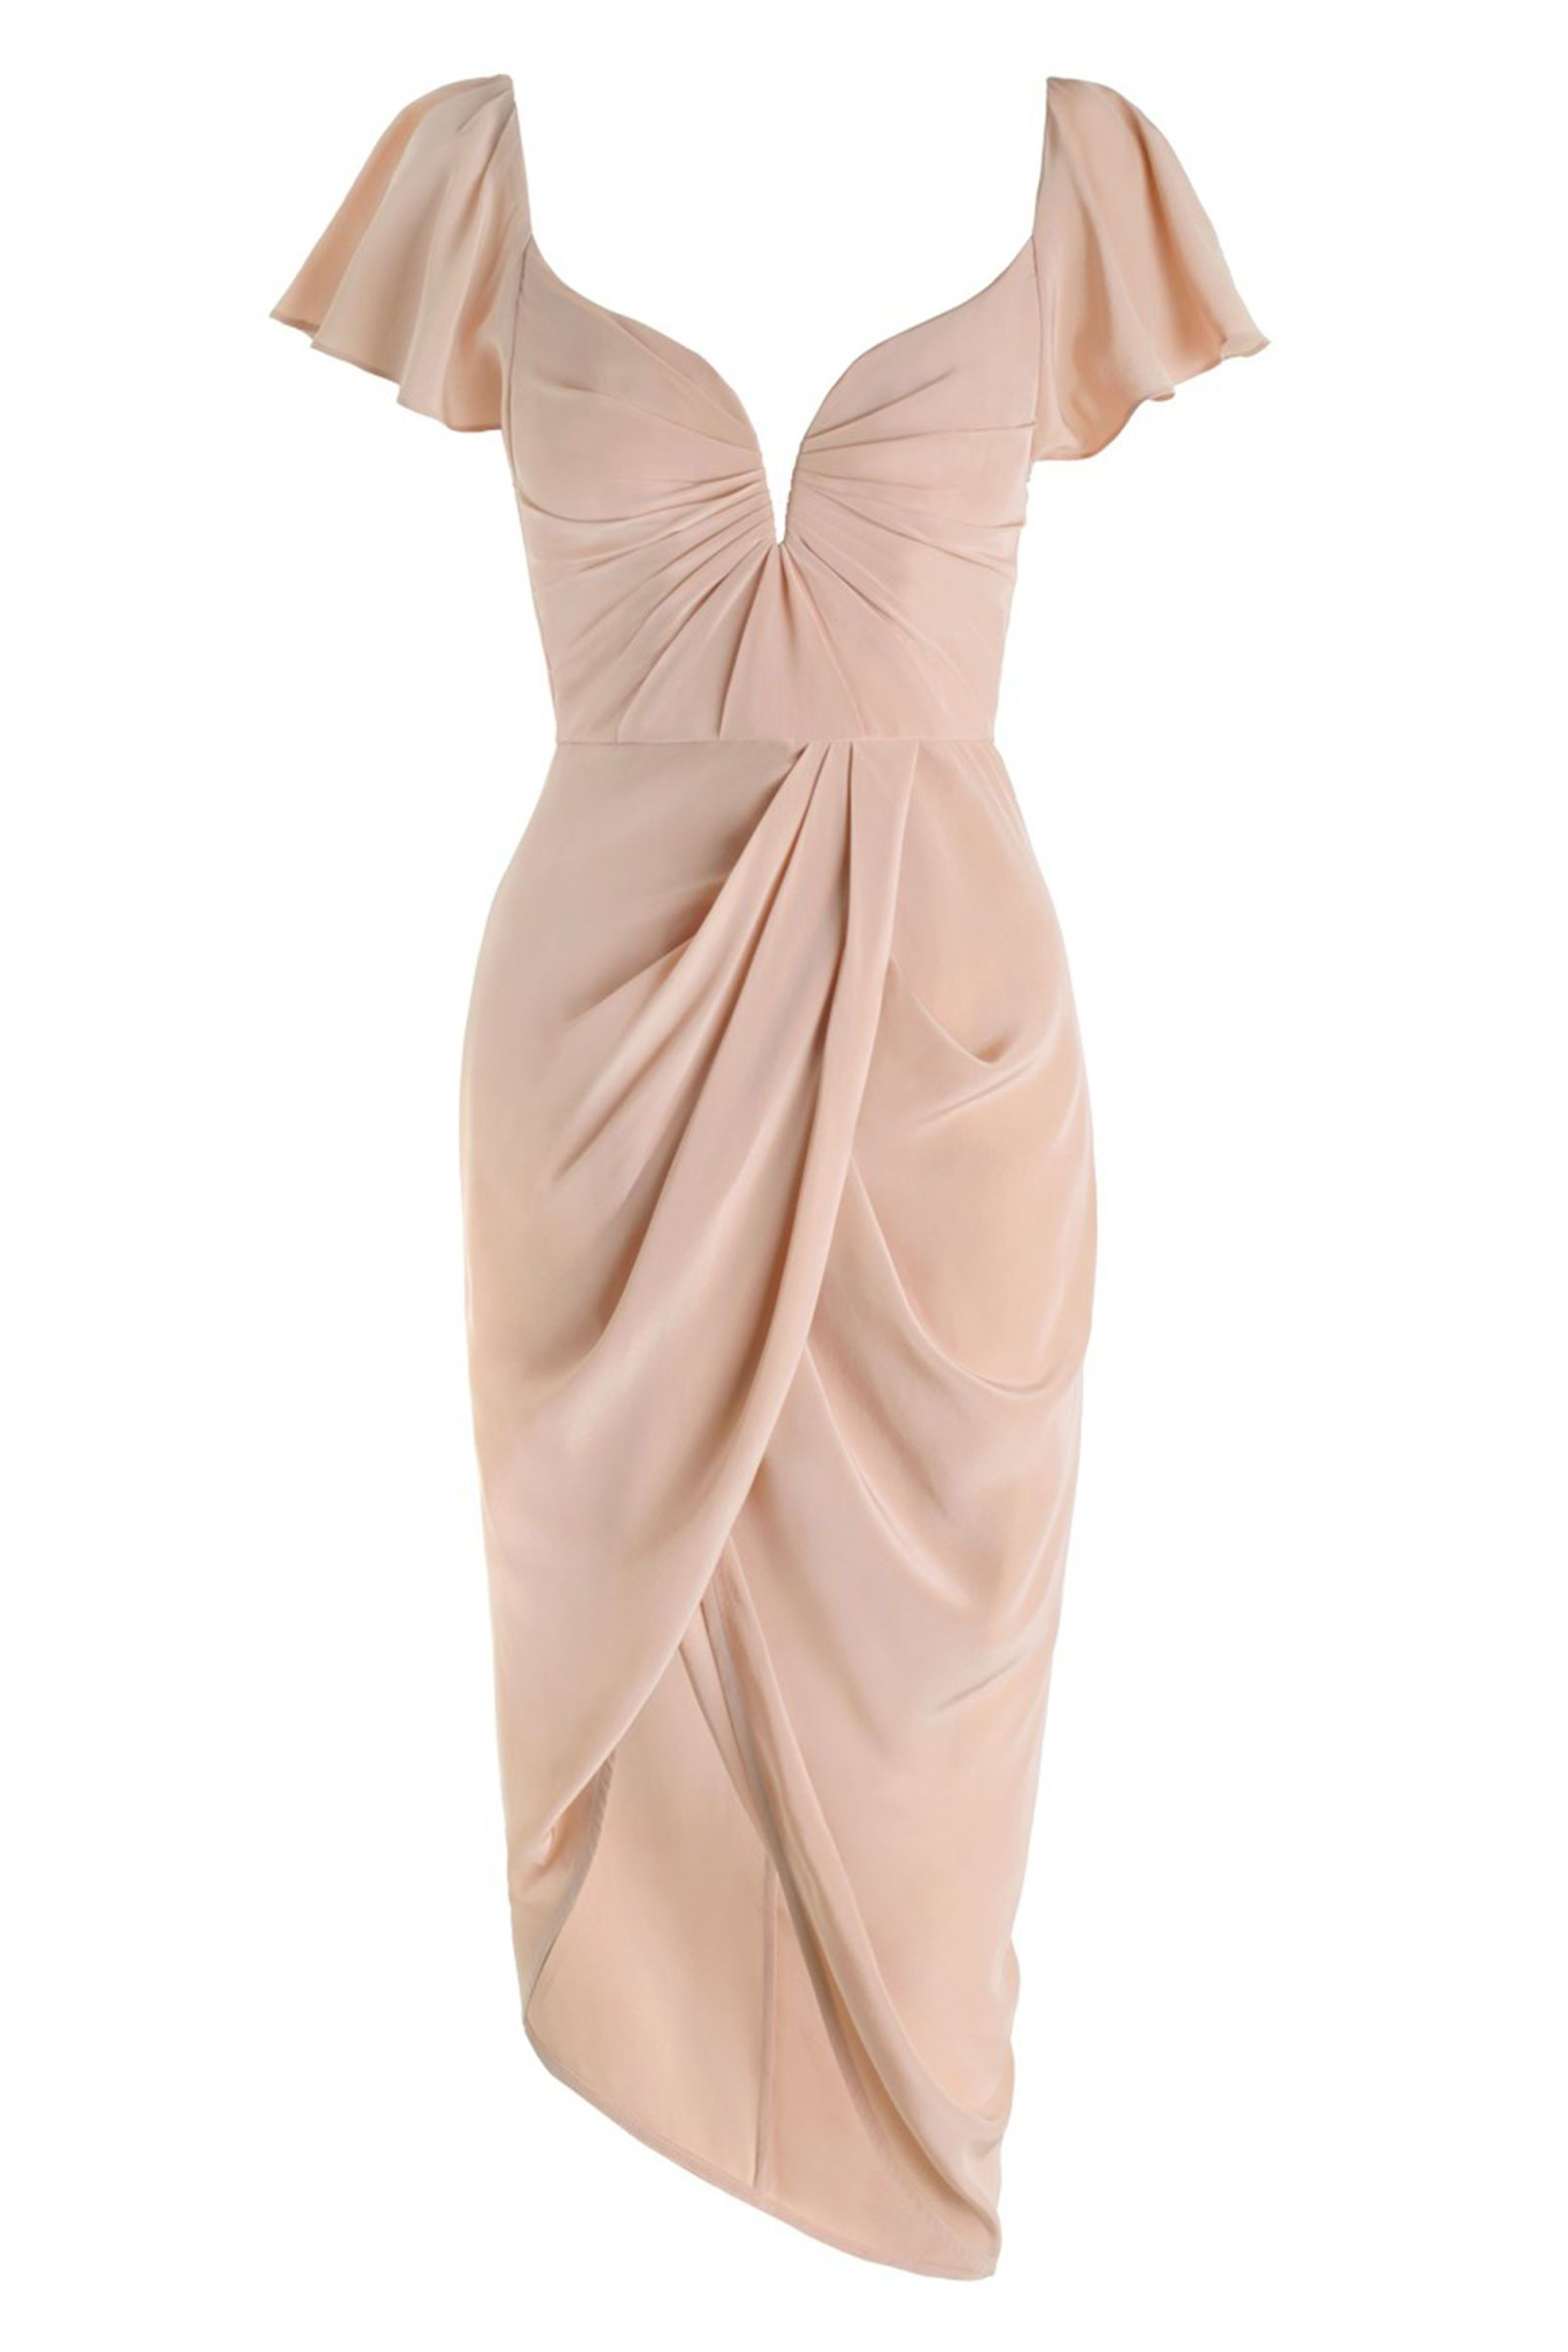 Dresses to wear to a fall wedding for a guest   Dresses to Wear to a Fall Wedding  Dresses  Pinterest  Clothes